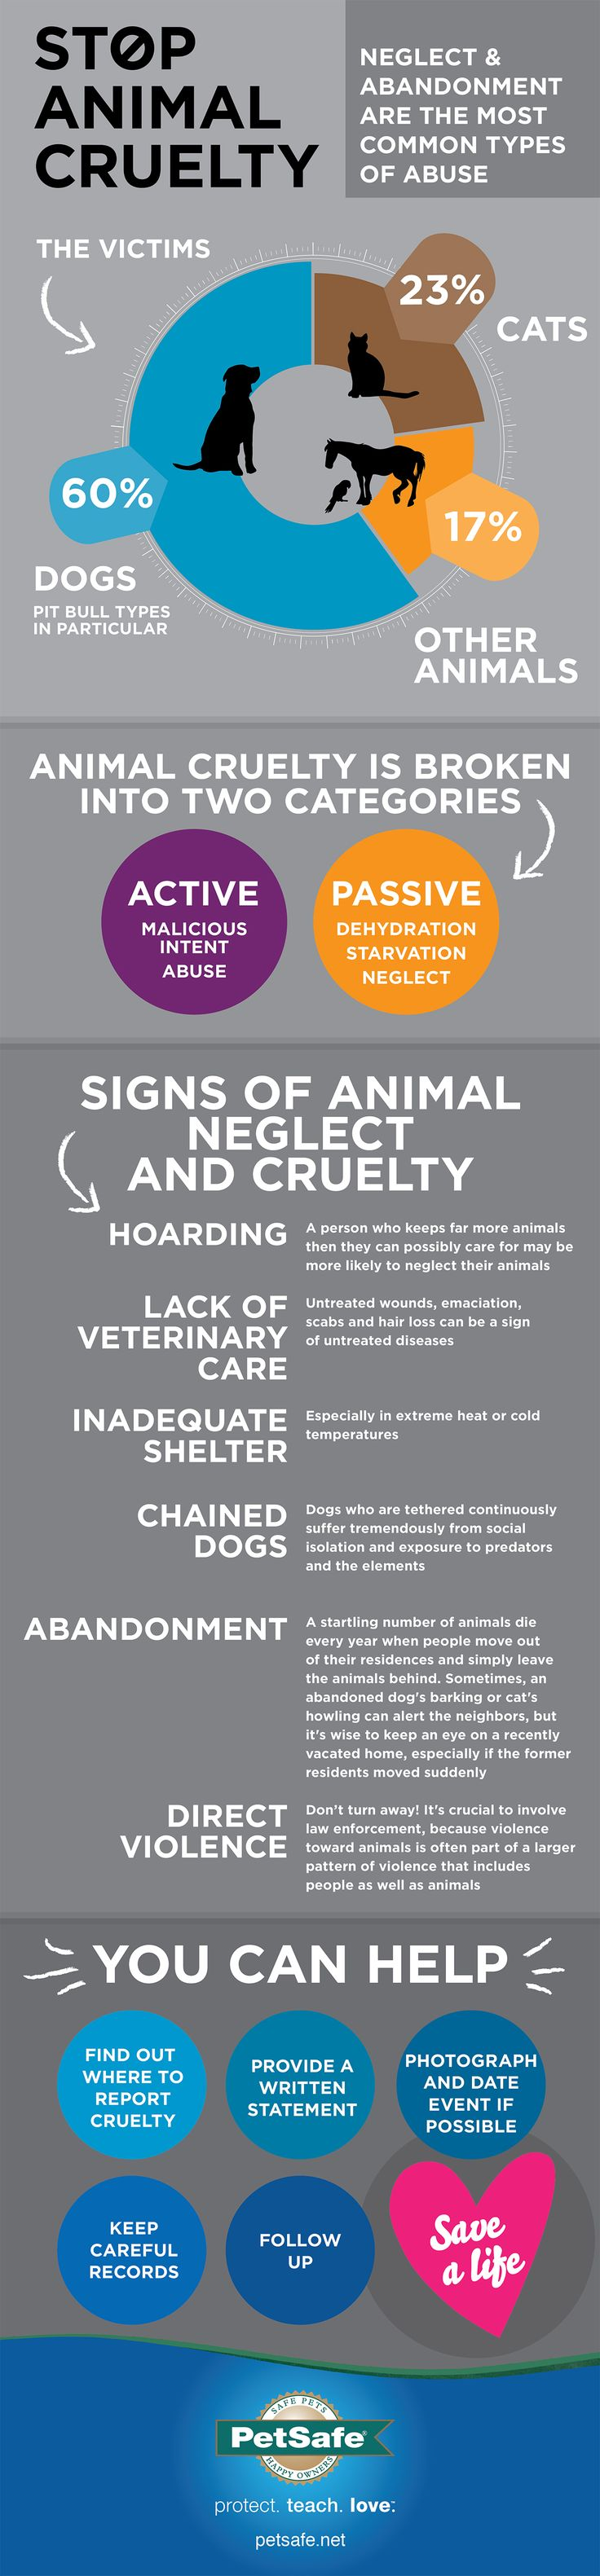 17 best ideas about animal cruelty animal rights help prevent animal cruelty and pease live vegan because food animals suffer extreme abuse live